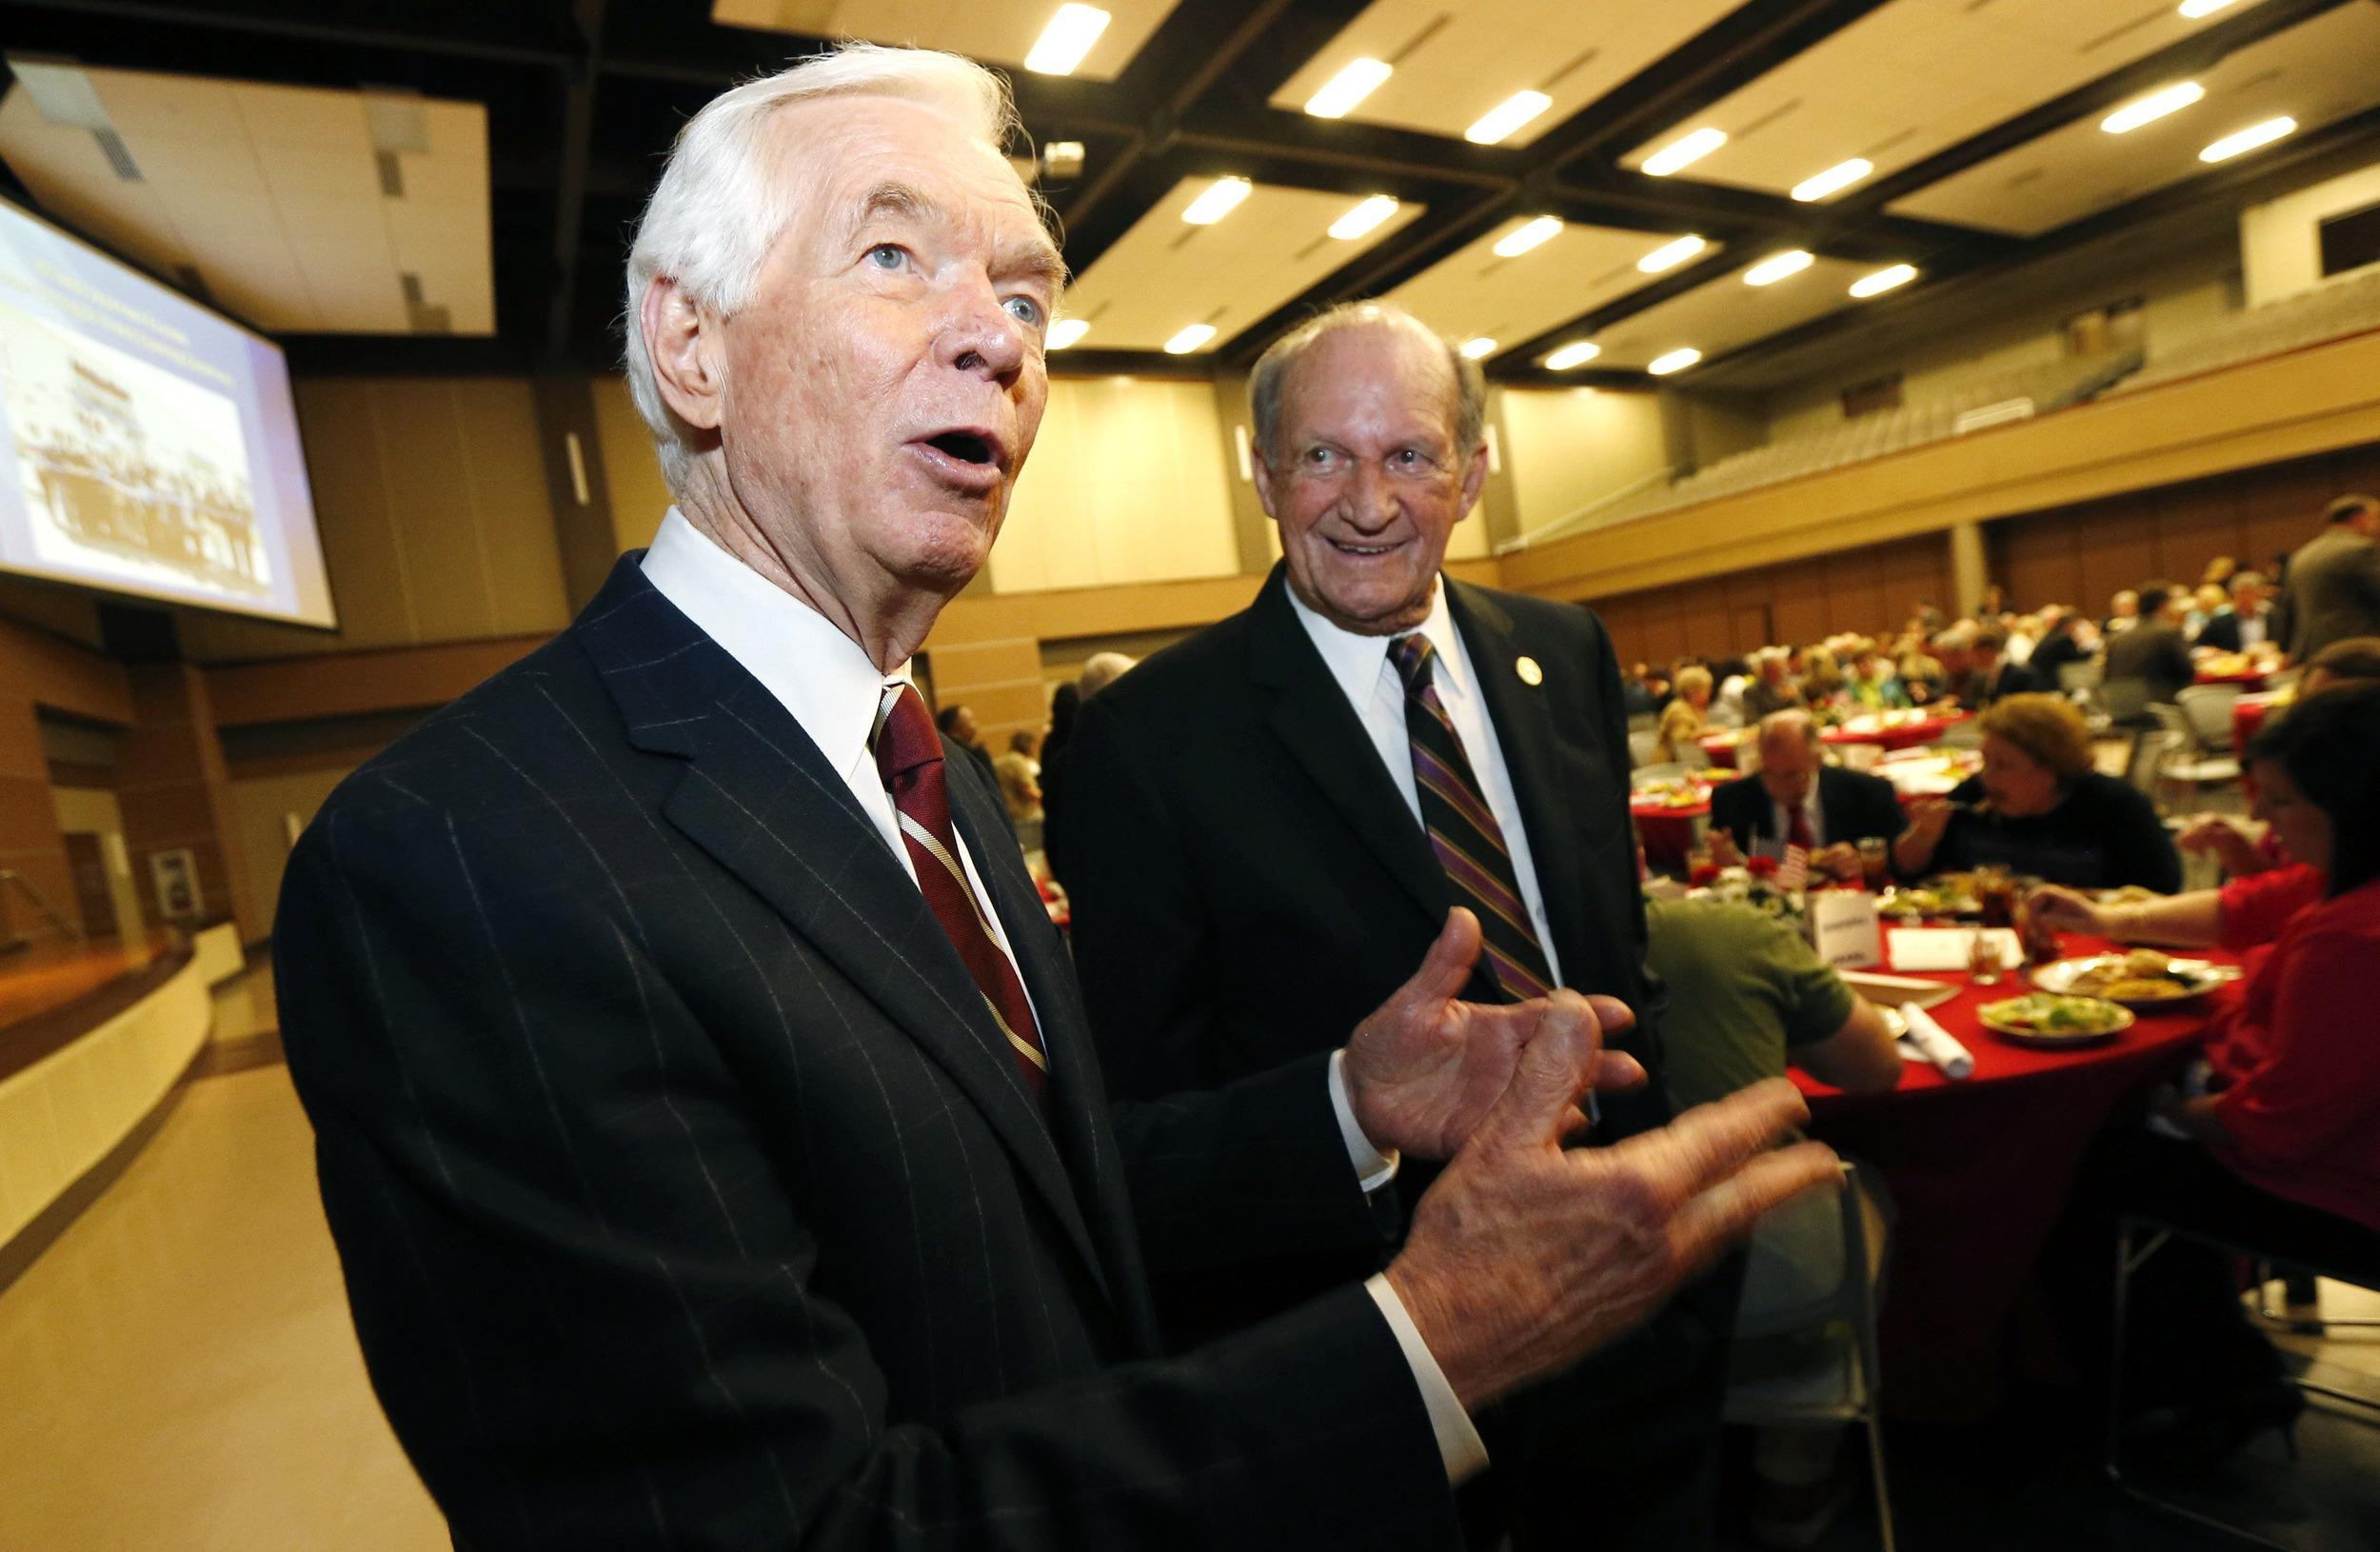 Image: Thad Cochran, Ray Rogers